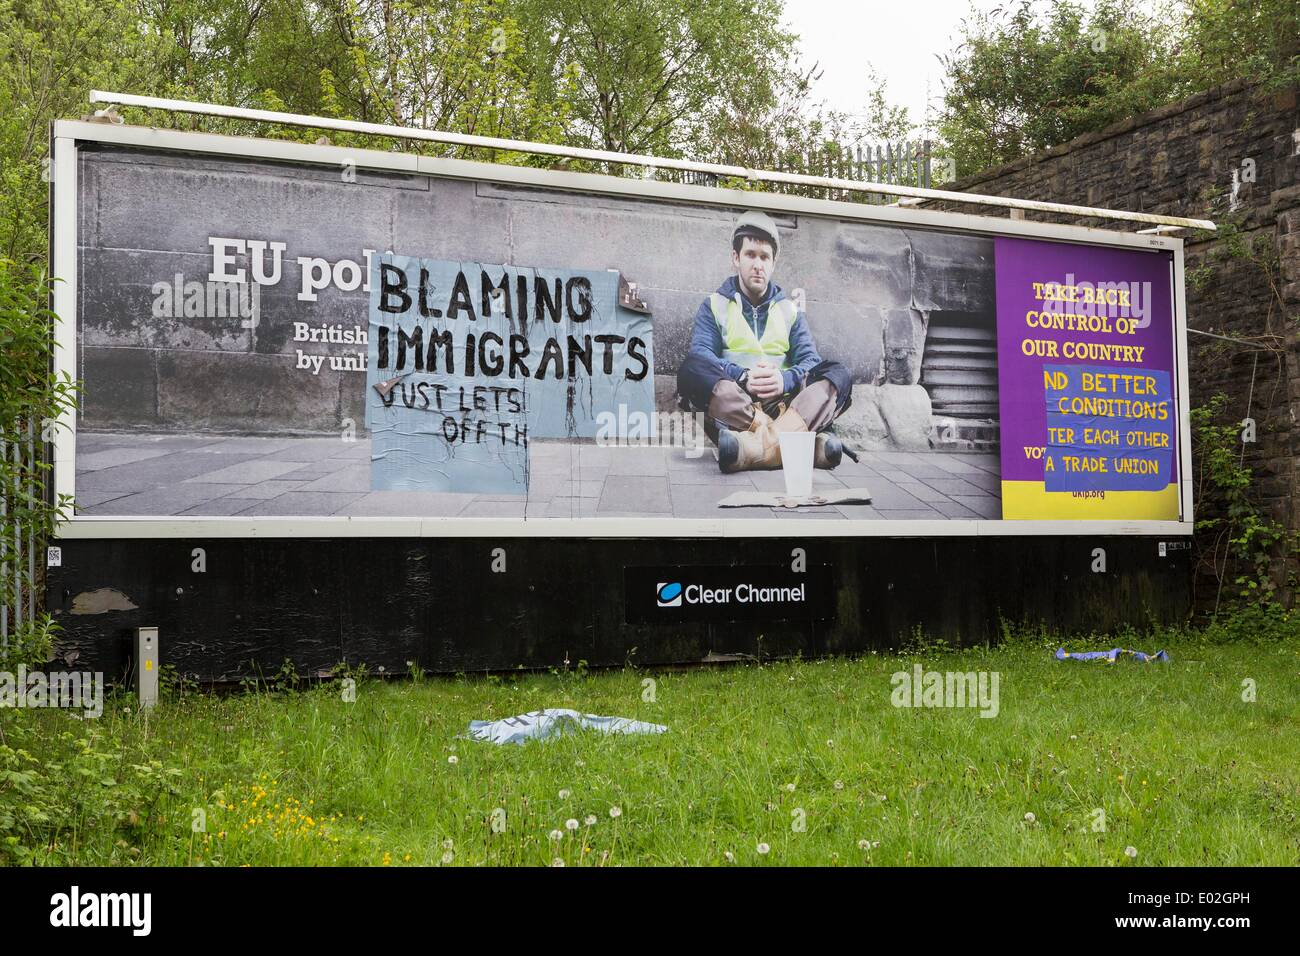 Swansea, UK. 30th Apr, 2014. UKIP Campaign Poster defaced in Swansea ahead of party leader Nigel Farage's visit to the city today. Credit:  John Wellings/Alamy Live News - Stock Image